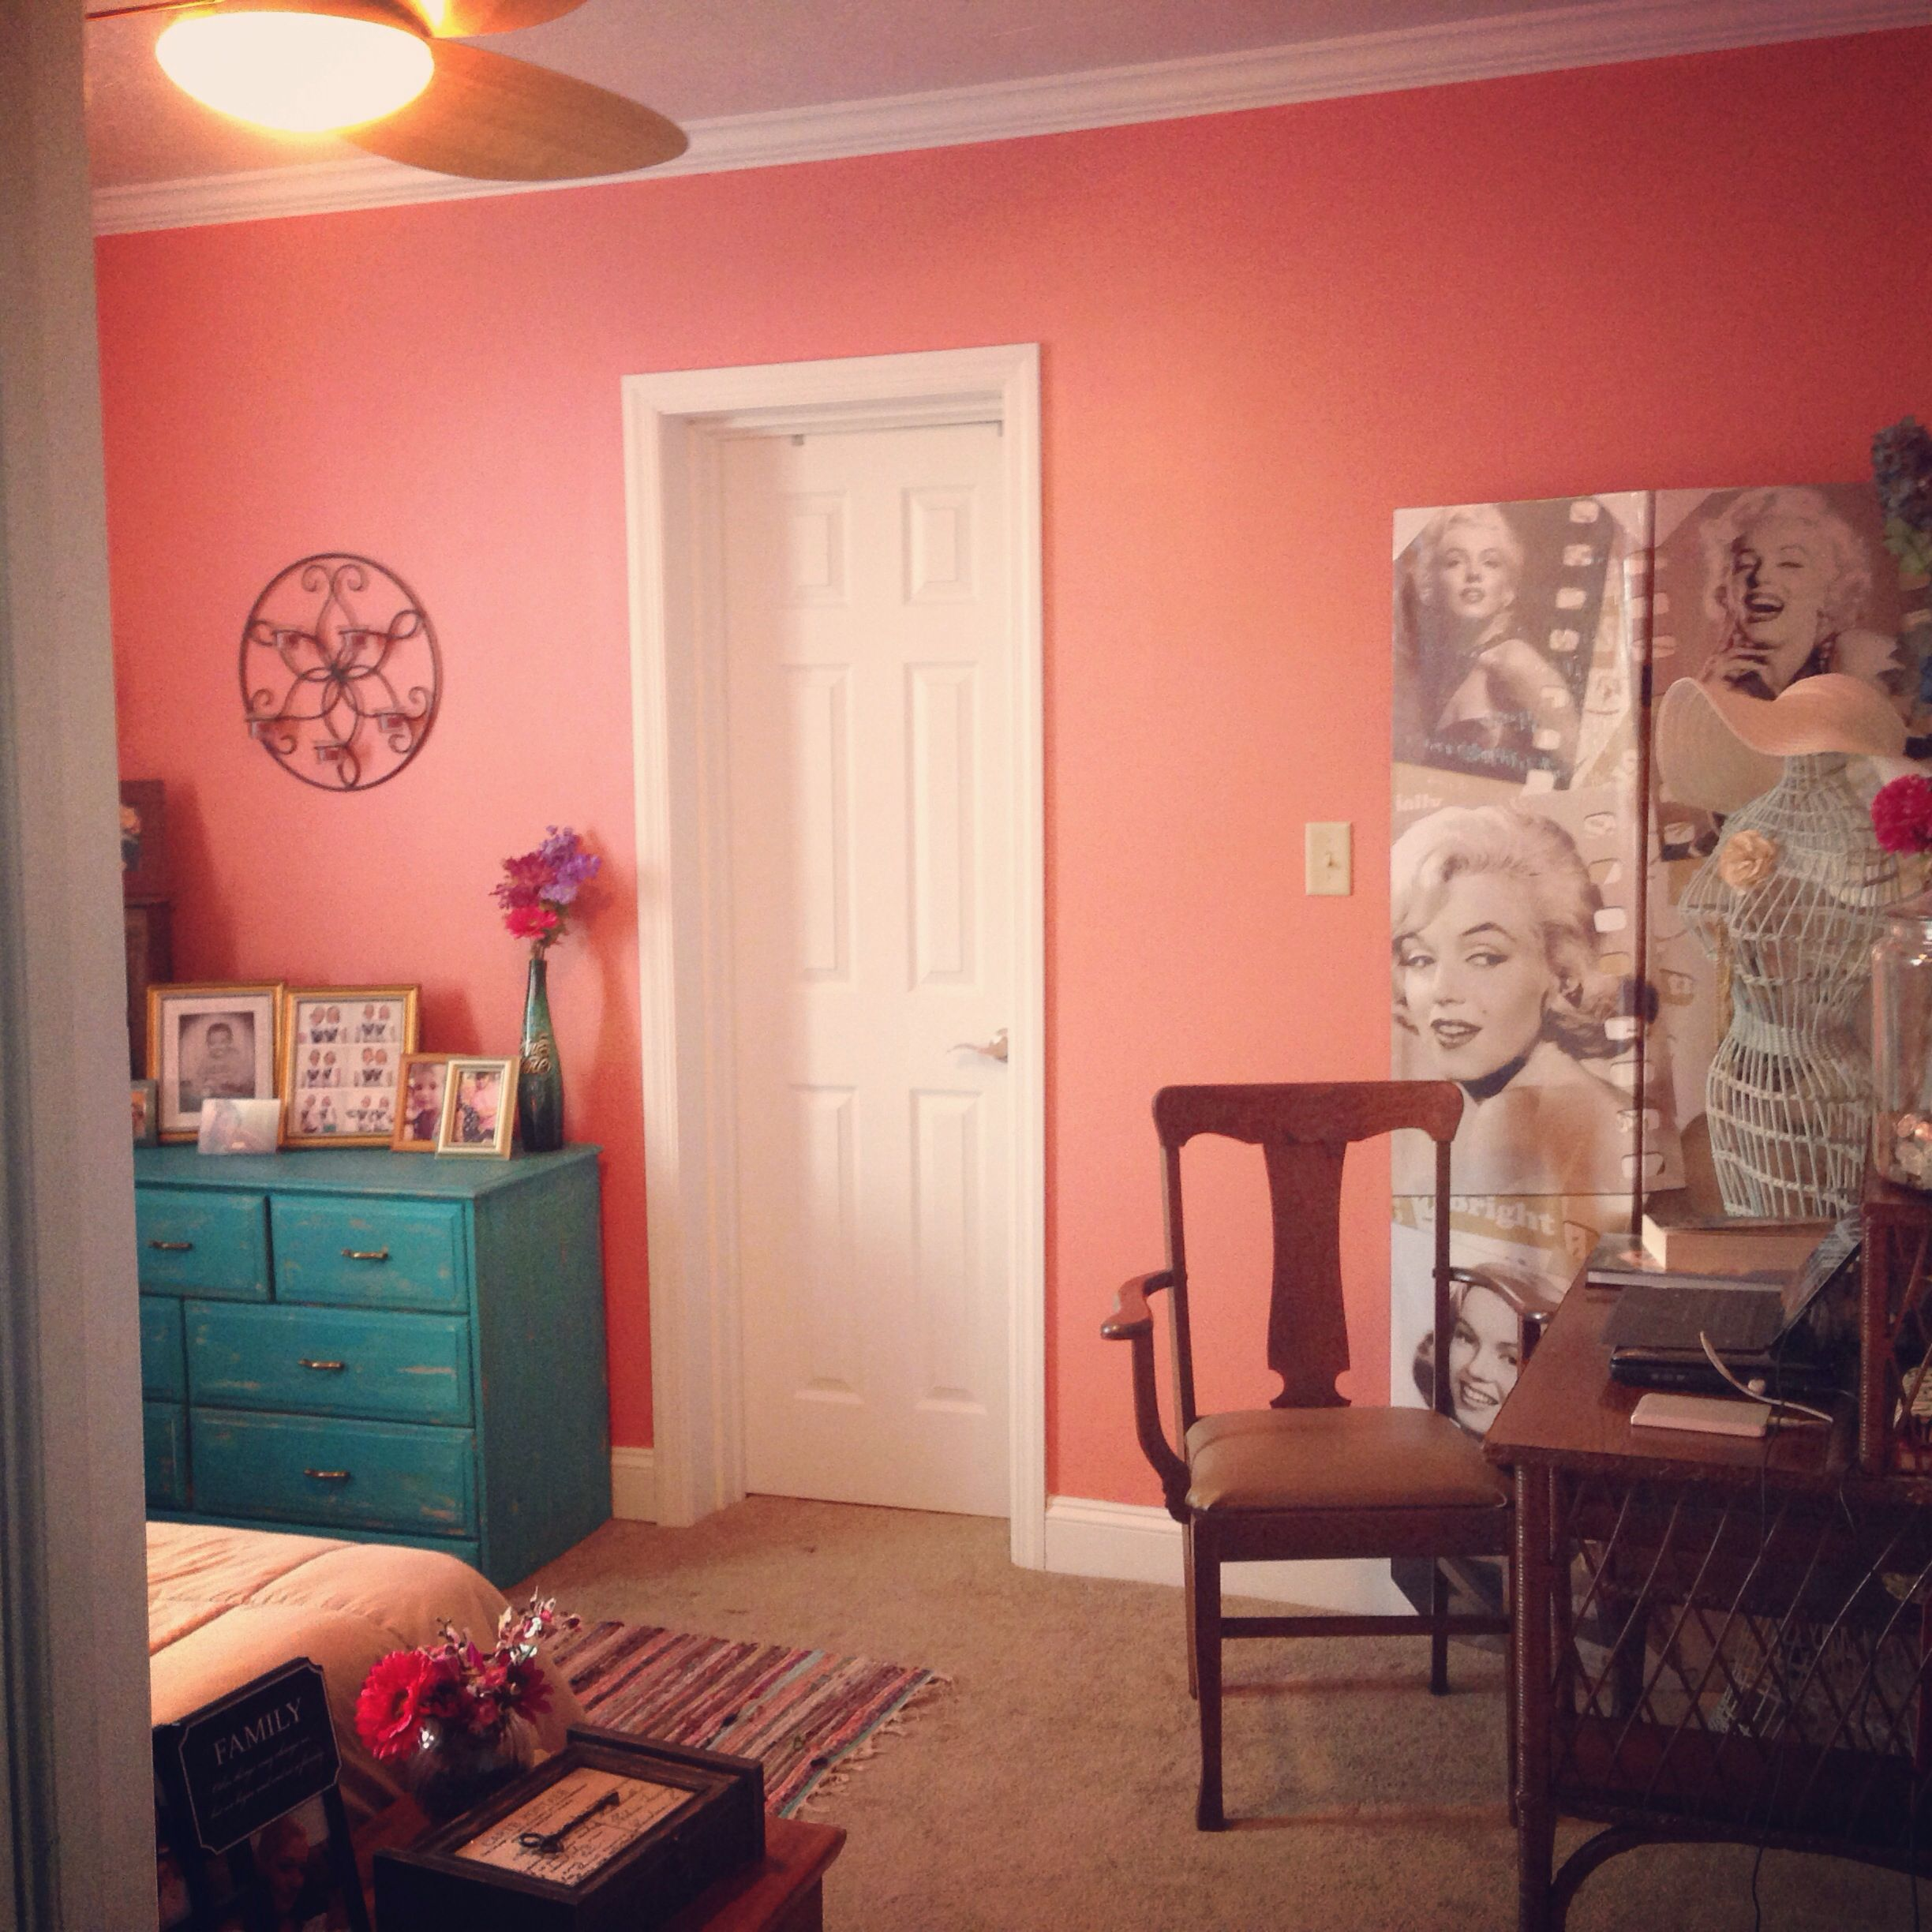 Behr Mellow Coral, Refurbished Teal Dresser Eclectic (Paint For Chair